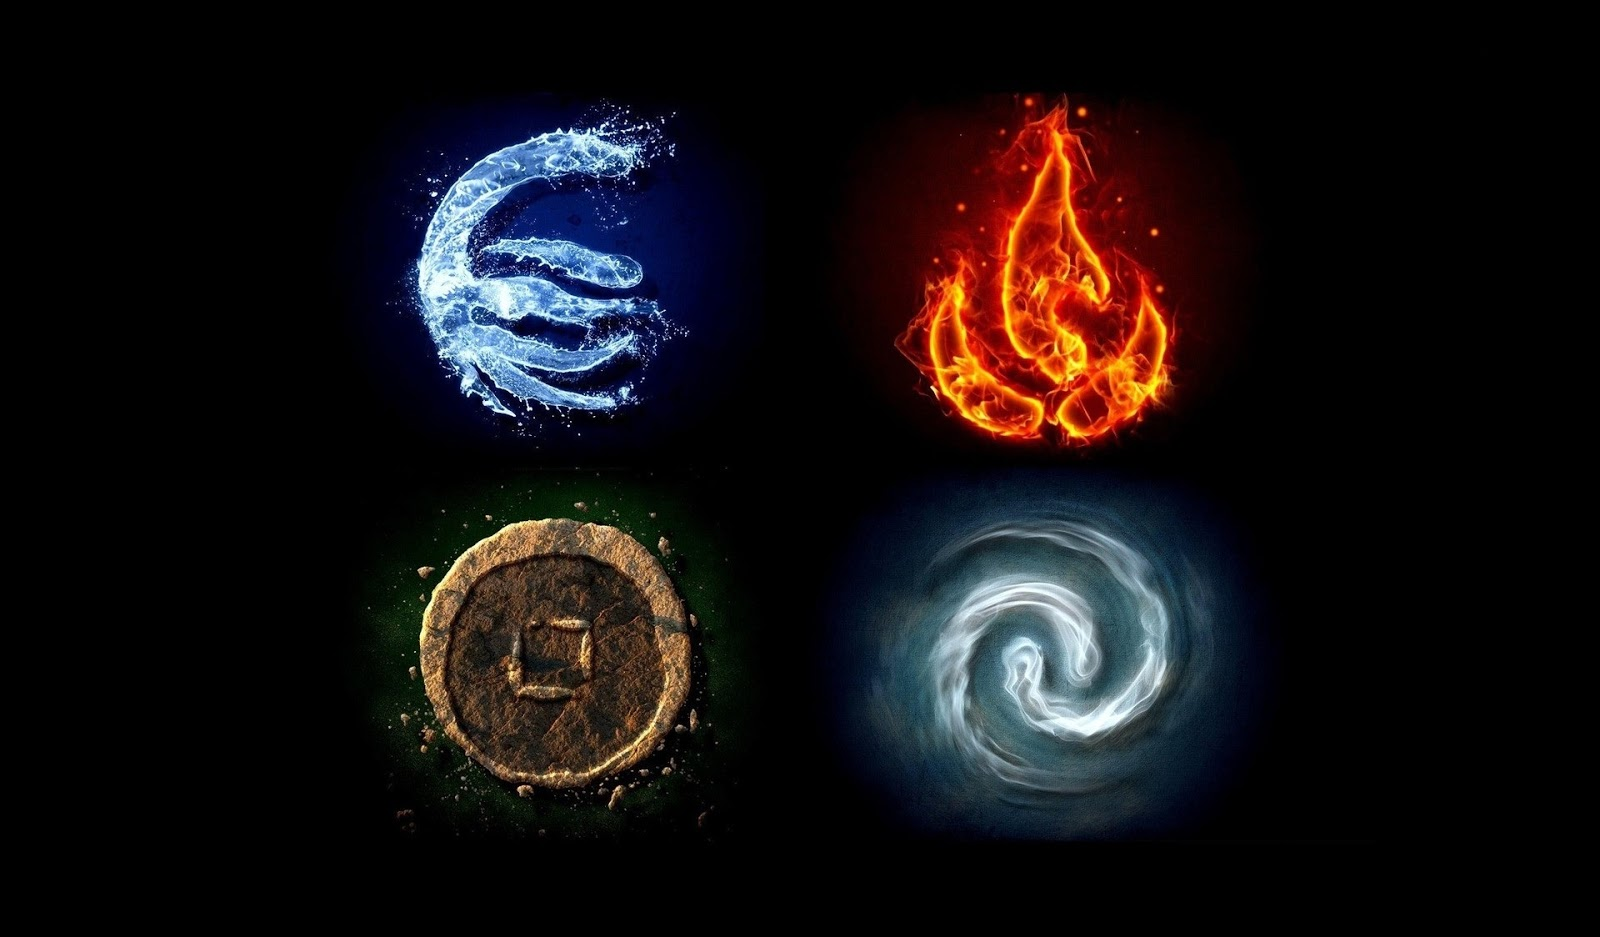 Http Zizing Blogspot Com 2013 01 Four Elements Of Nature Html